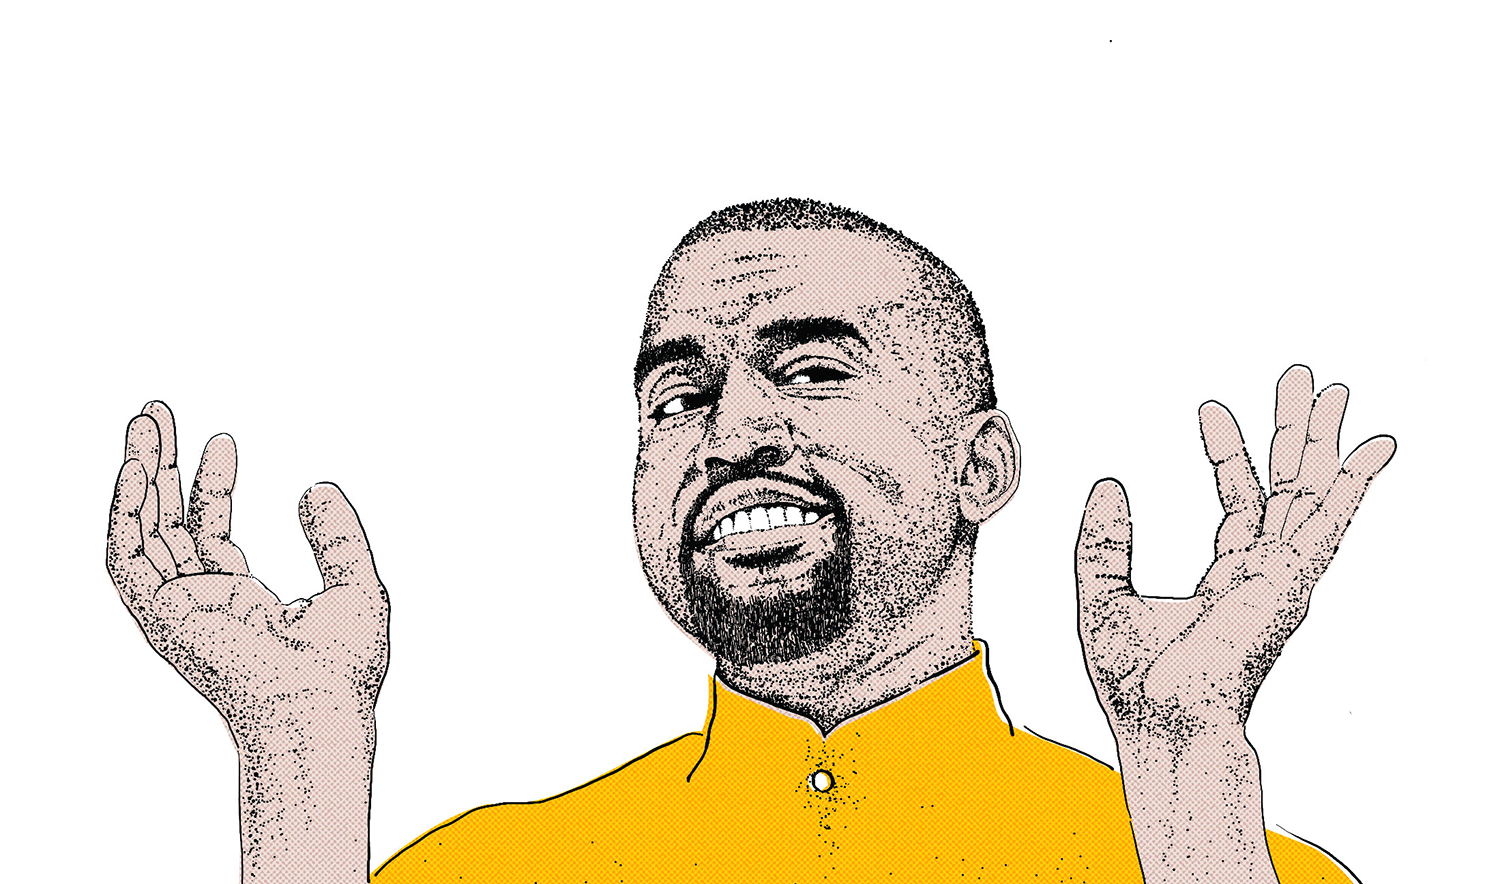 rbtq_Illustration_Seiser_Illustratorin_Hamburg_Rapper_Ye_dots_Kanye_West_Skizze.jpg